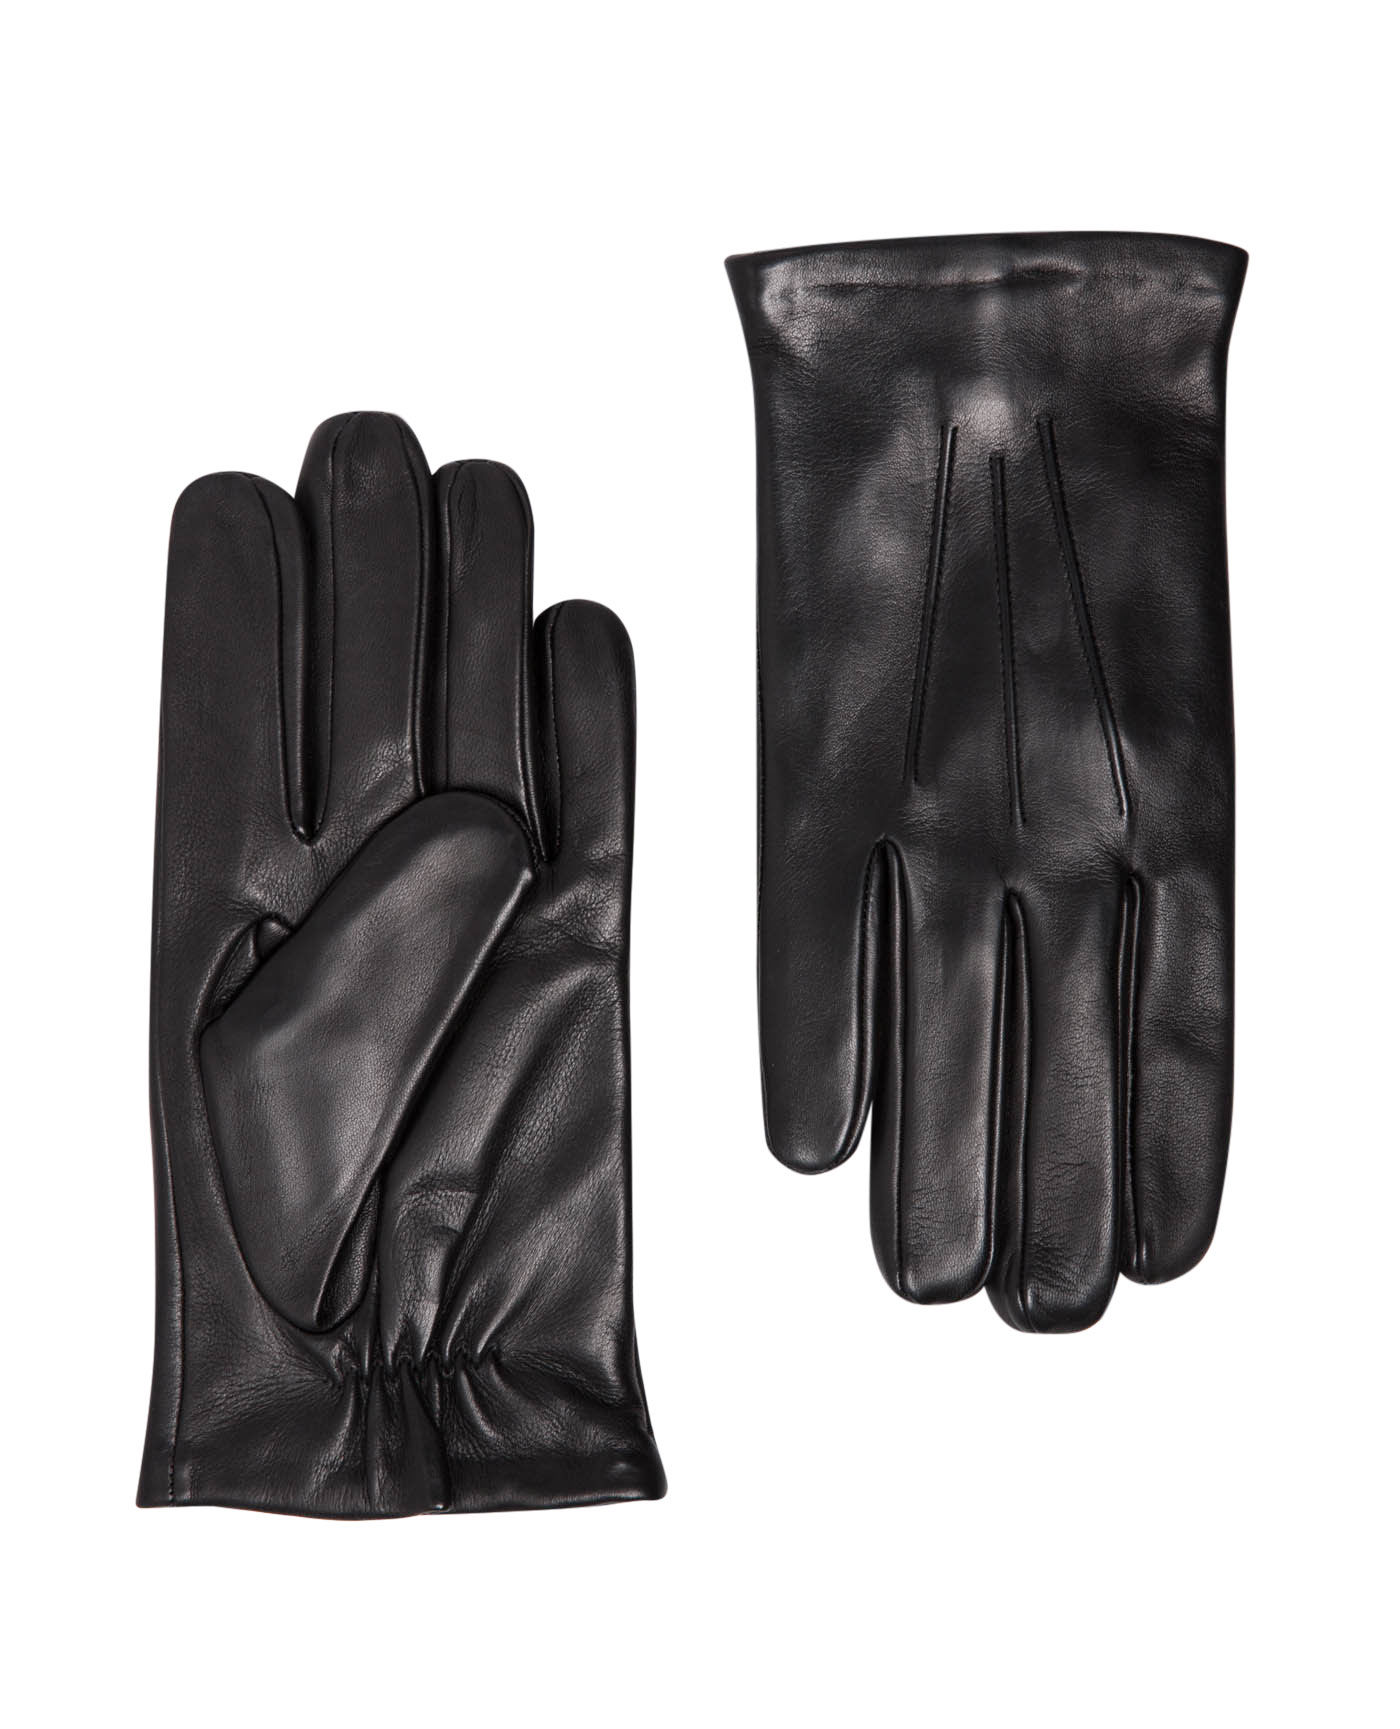 T.M.Lewin Black Leather Gloves